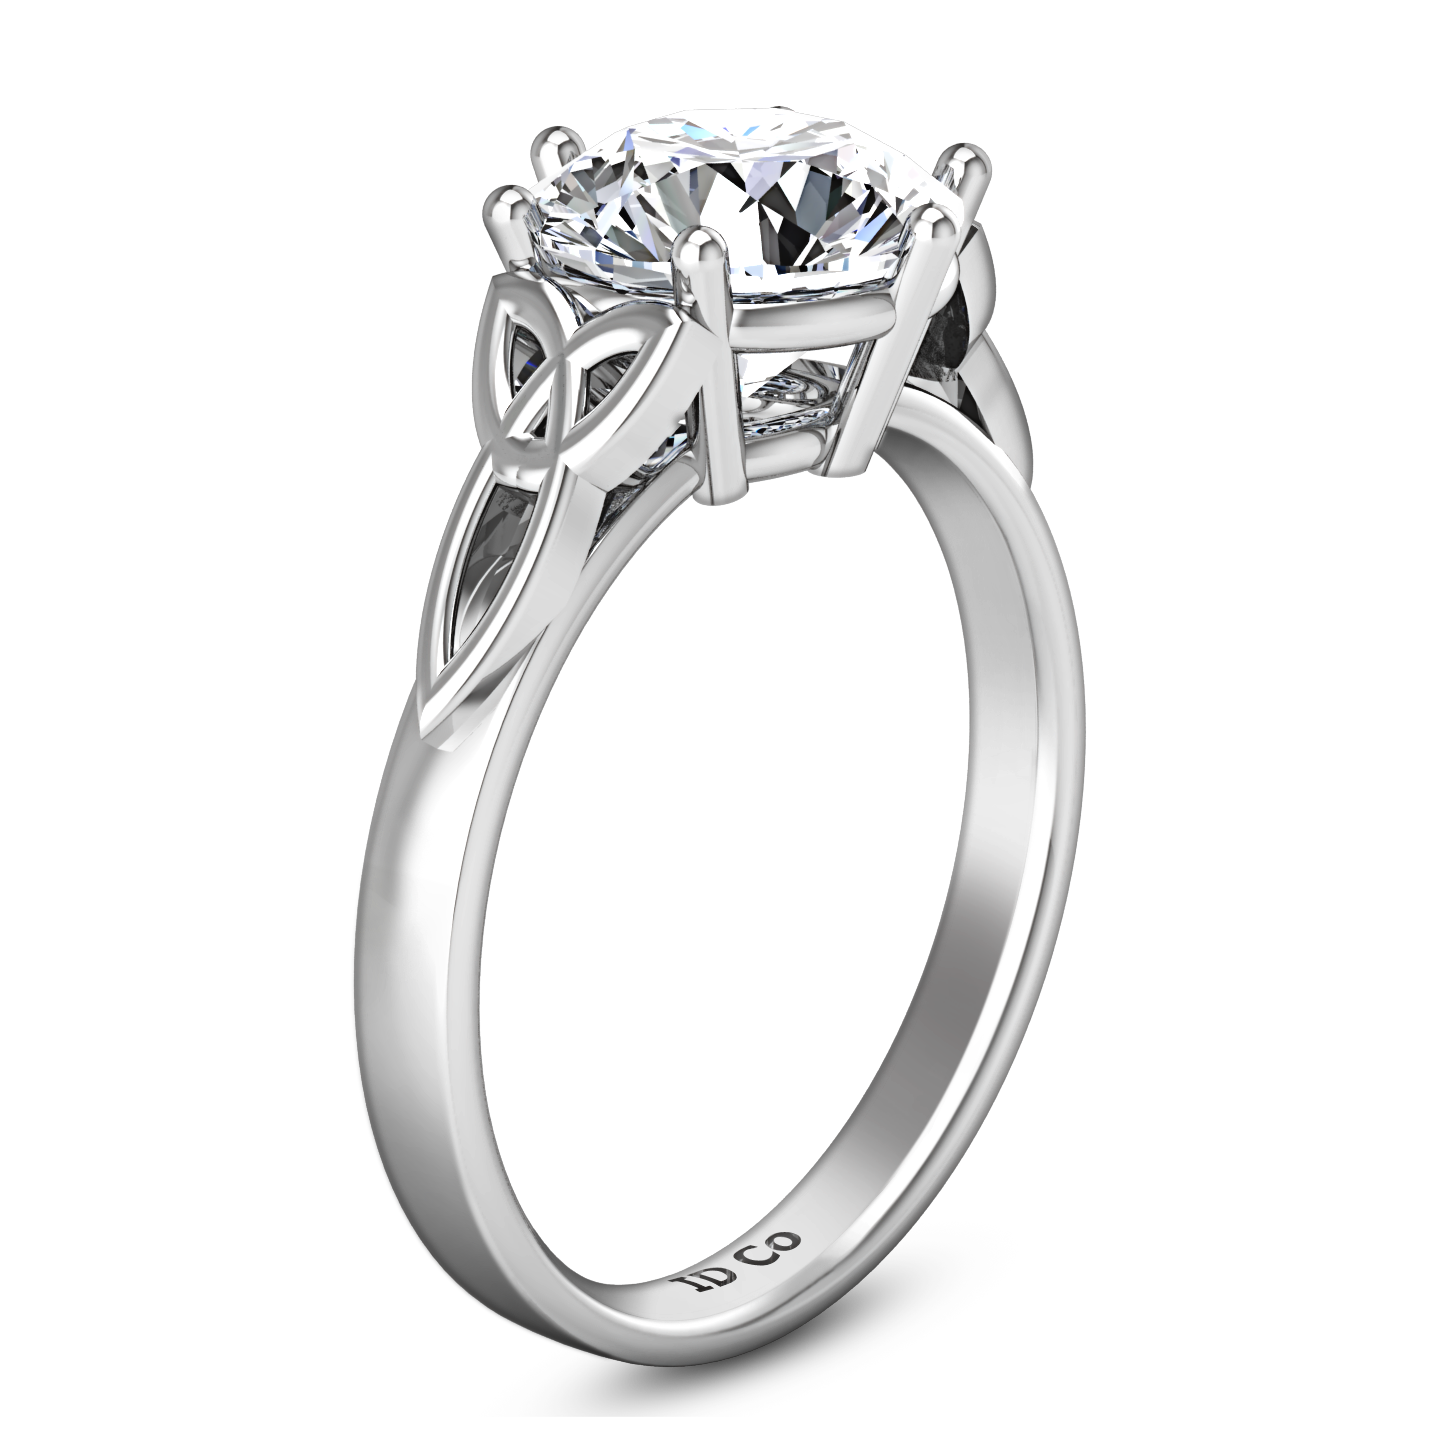 solitaire halo n lee jewelers ring rings comparison raymond vs wedding engagement